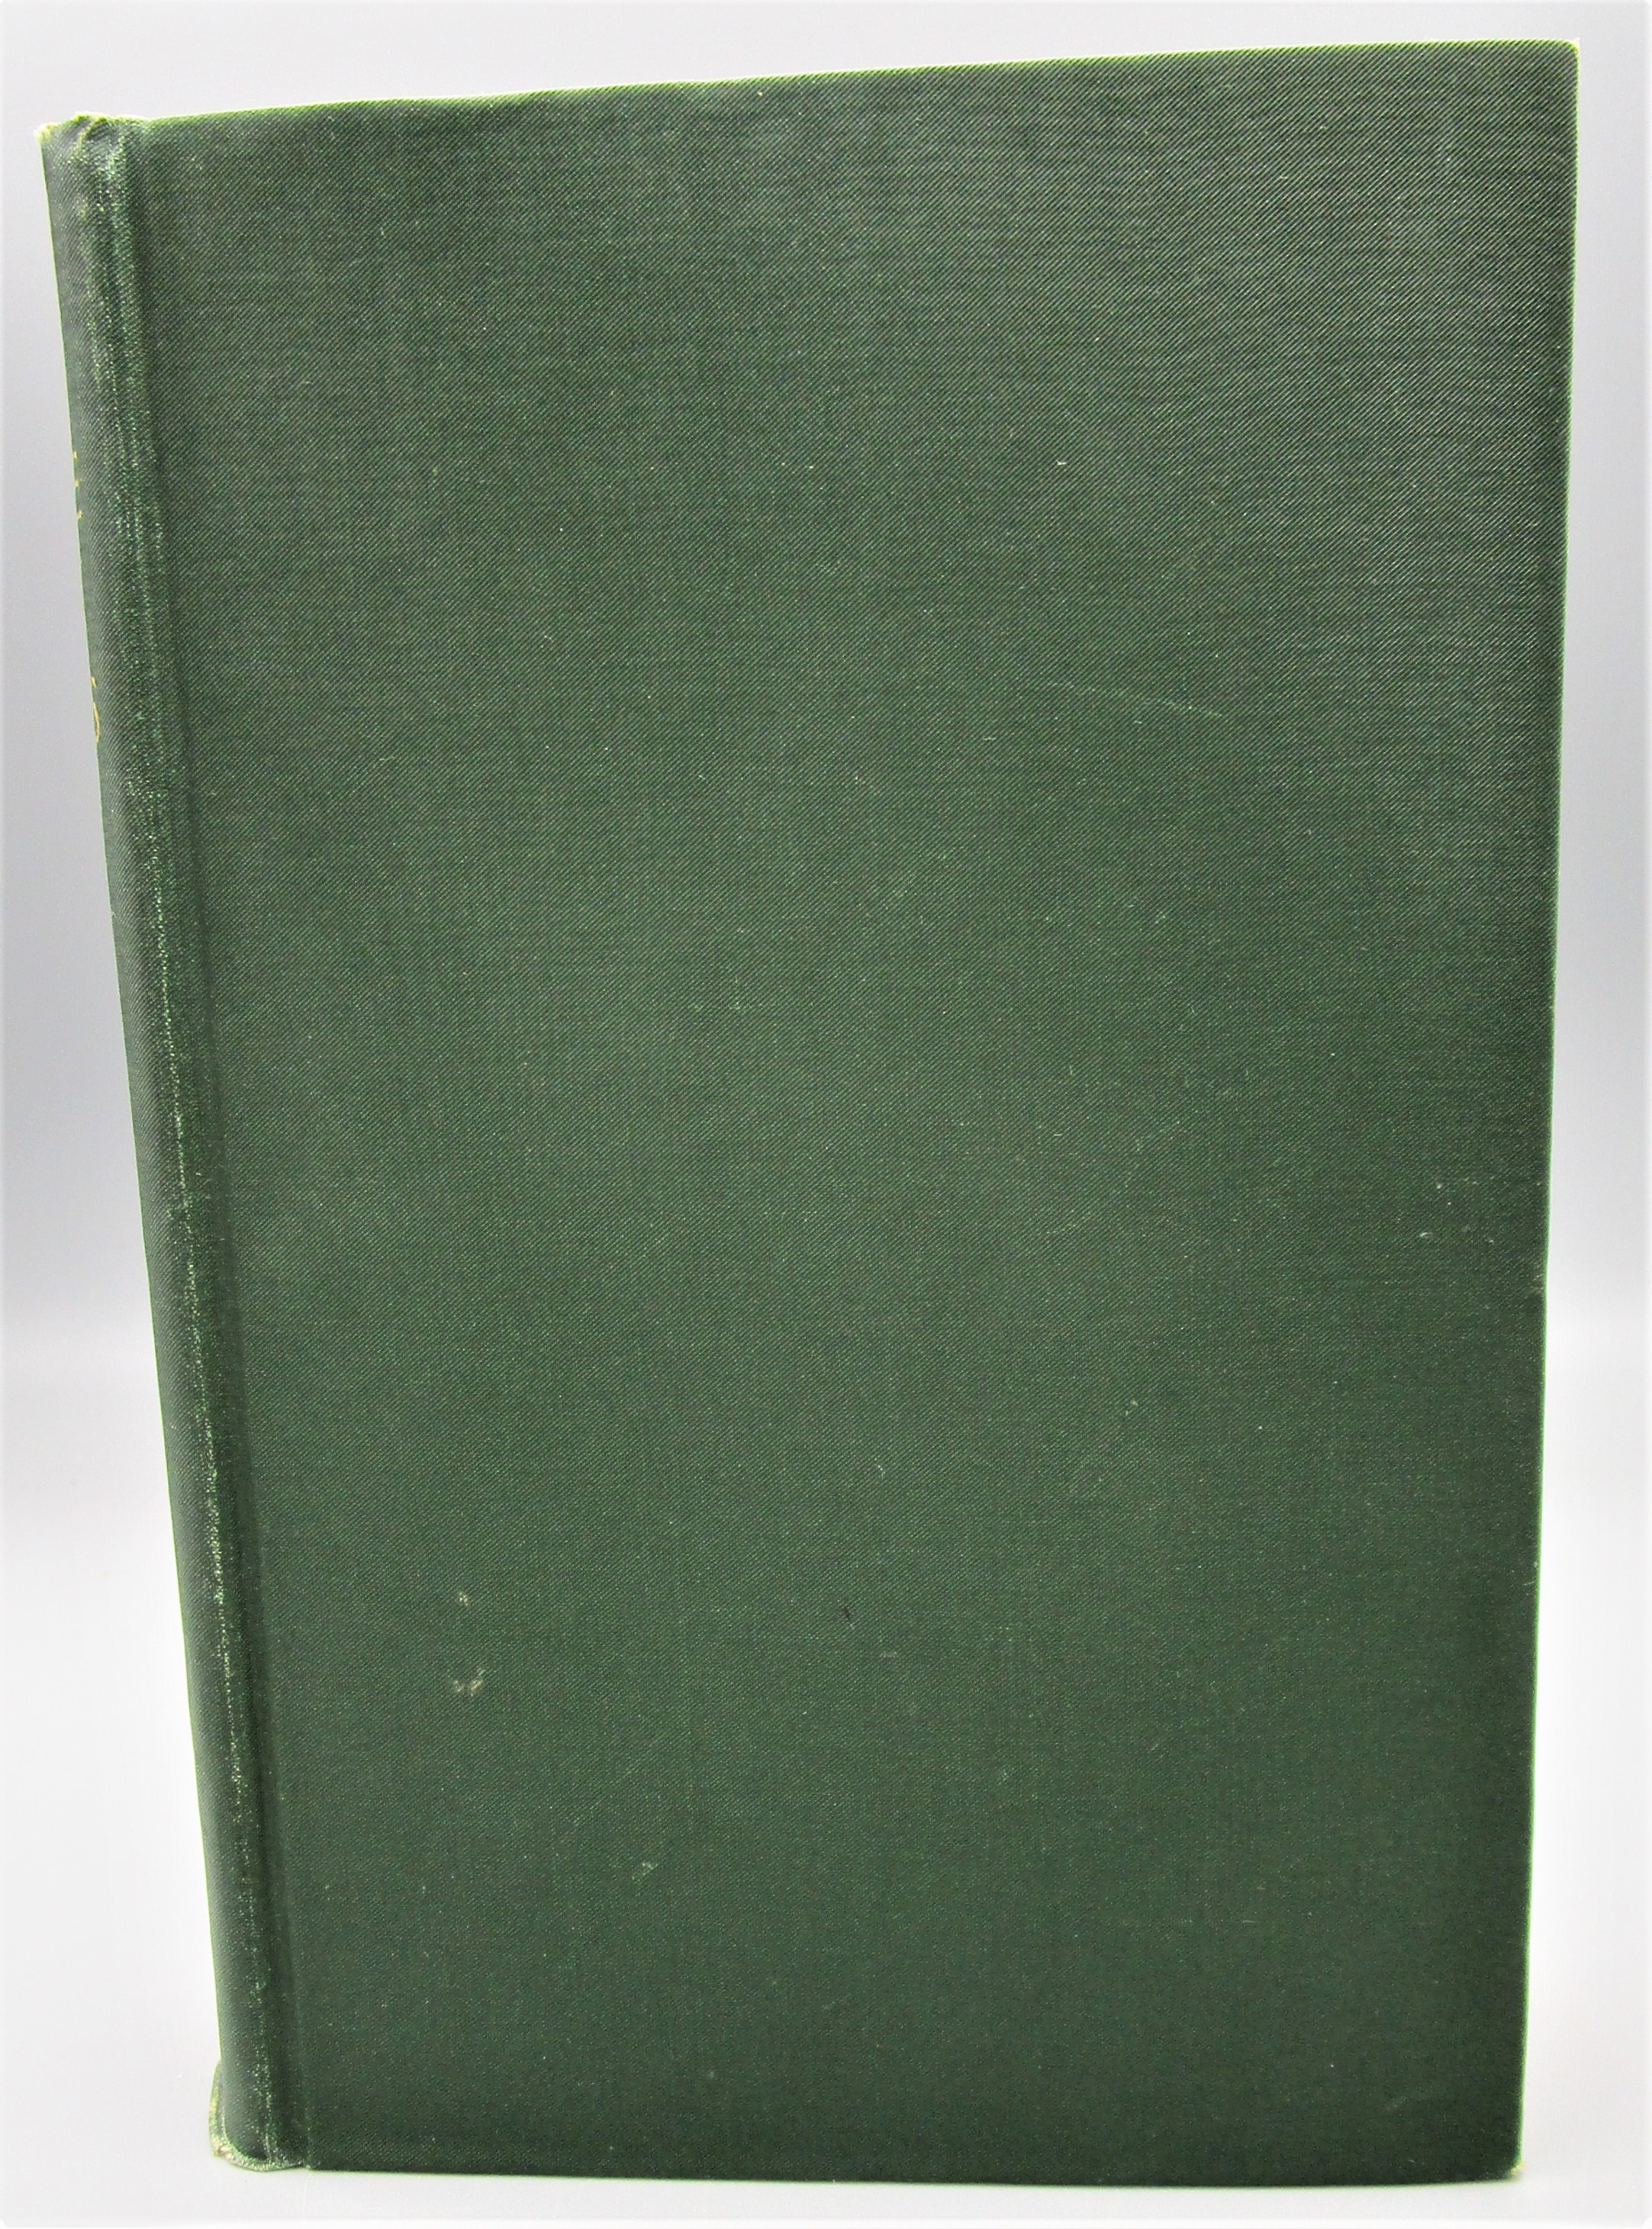 THE MENTAL STATE OF HYSTERICALS, by Pierre Janet, MD. - 1901 First Edition